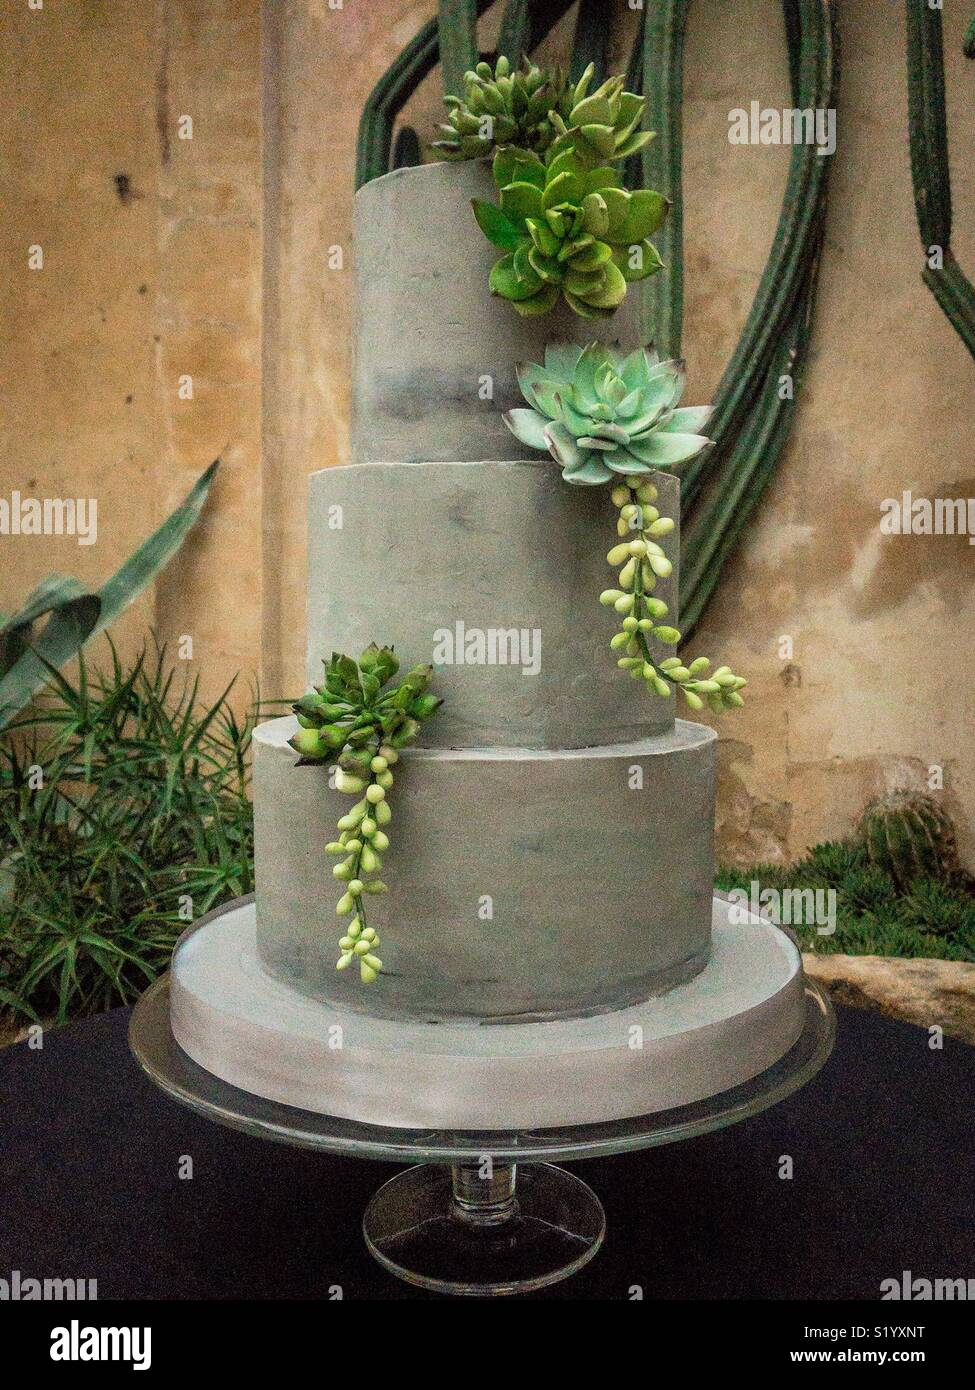 Brutalist three tier wedding cake with sugar succulent decorations - Stock Image